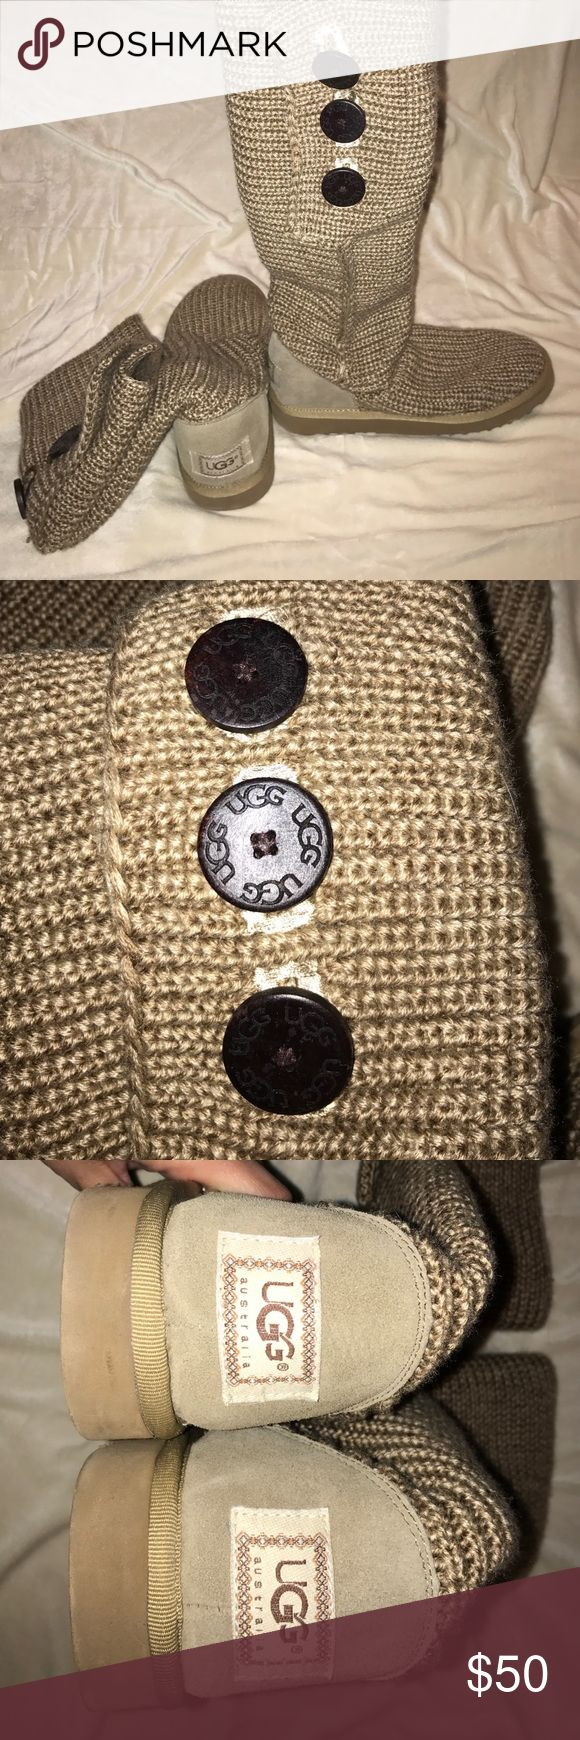 Oatmeal/ Tan Ugg Cardy Boots-Size 8 Oatmeal colored Ugg Cardy Boots! 3 functional buttons on the calves. Very good condition. Footbed inside is soft and plush, only worn a handful of times! Size 8. UGG Shoes Winter & Rain Boots